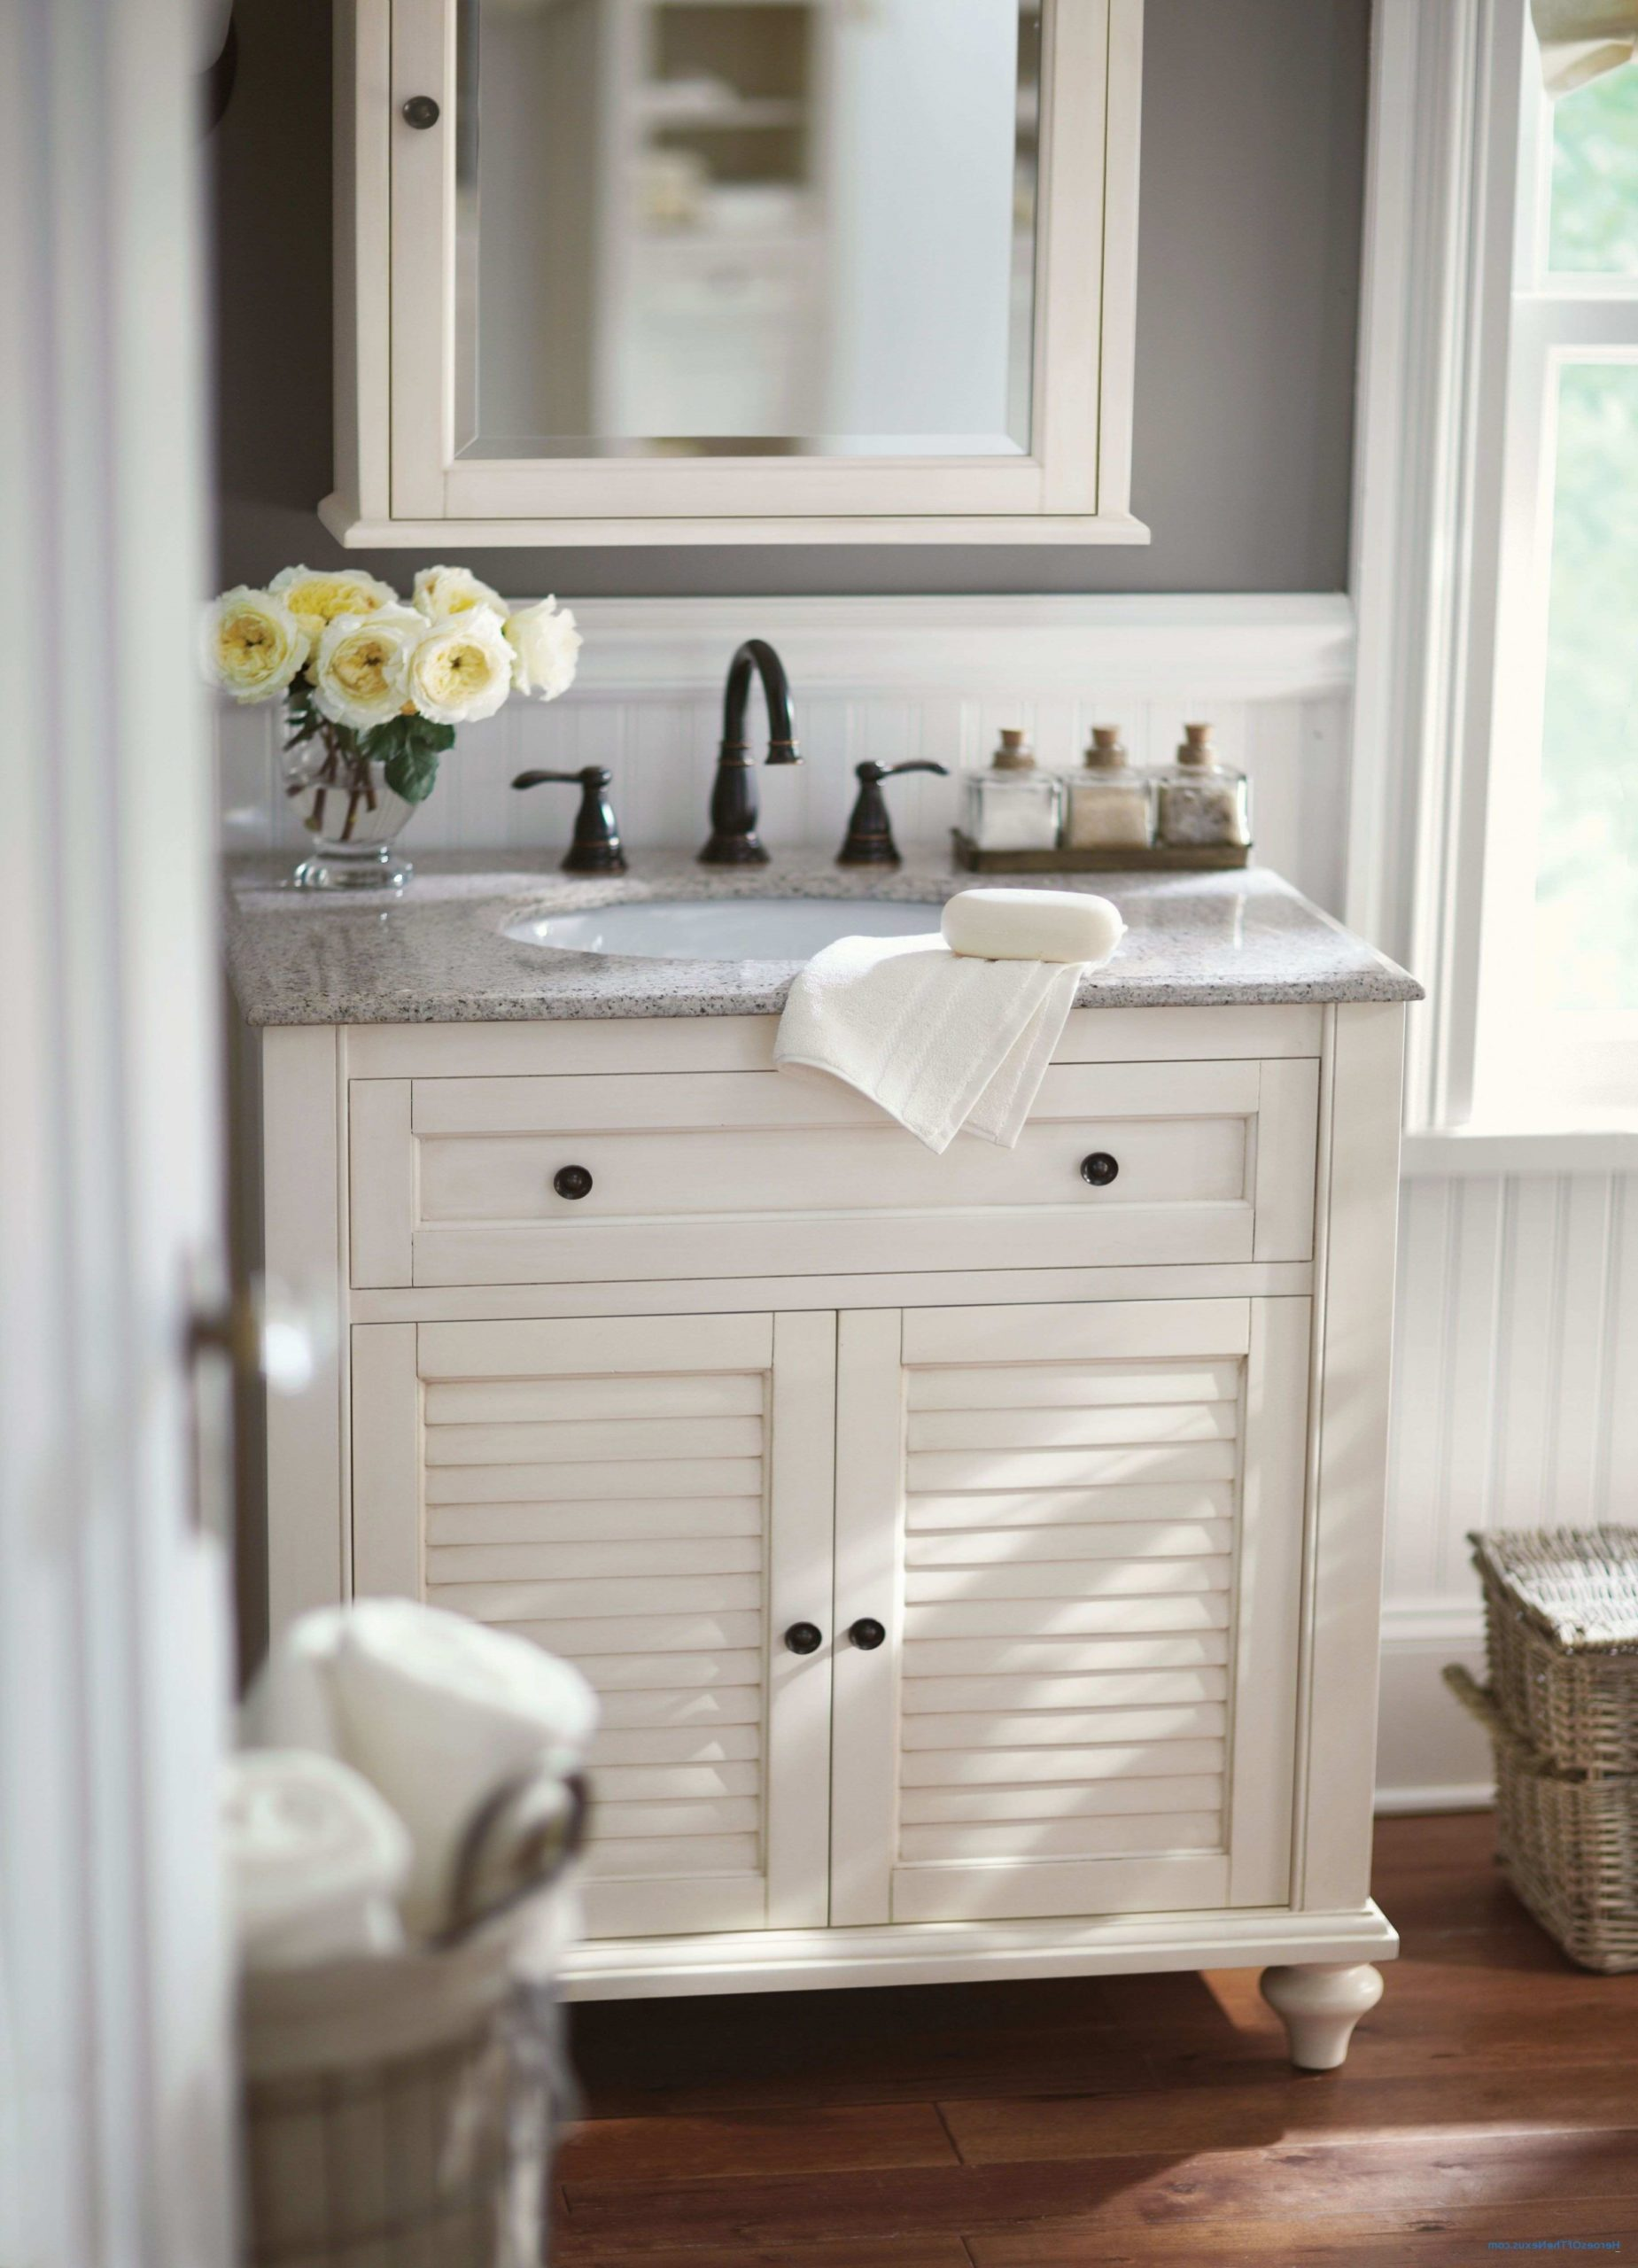 Turn an old dresser into a vanity in a few simple steps.